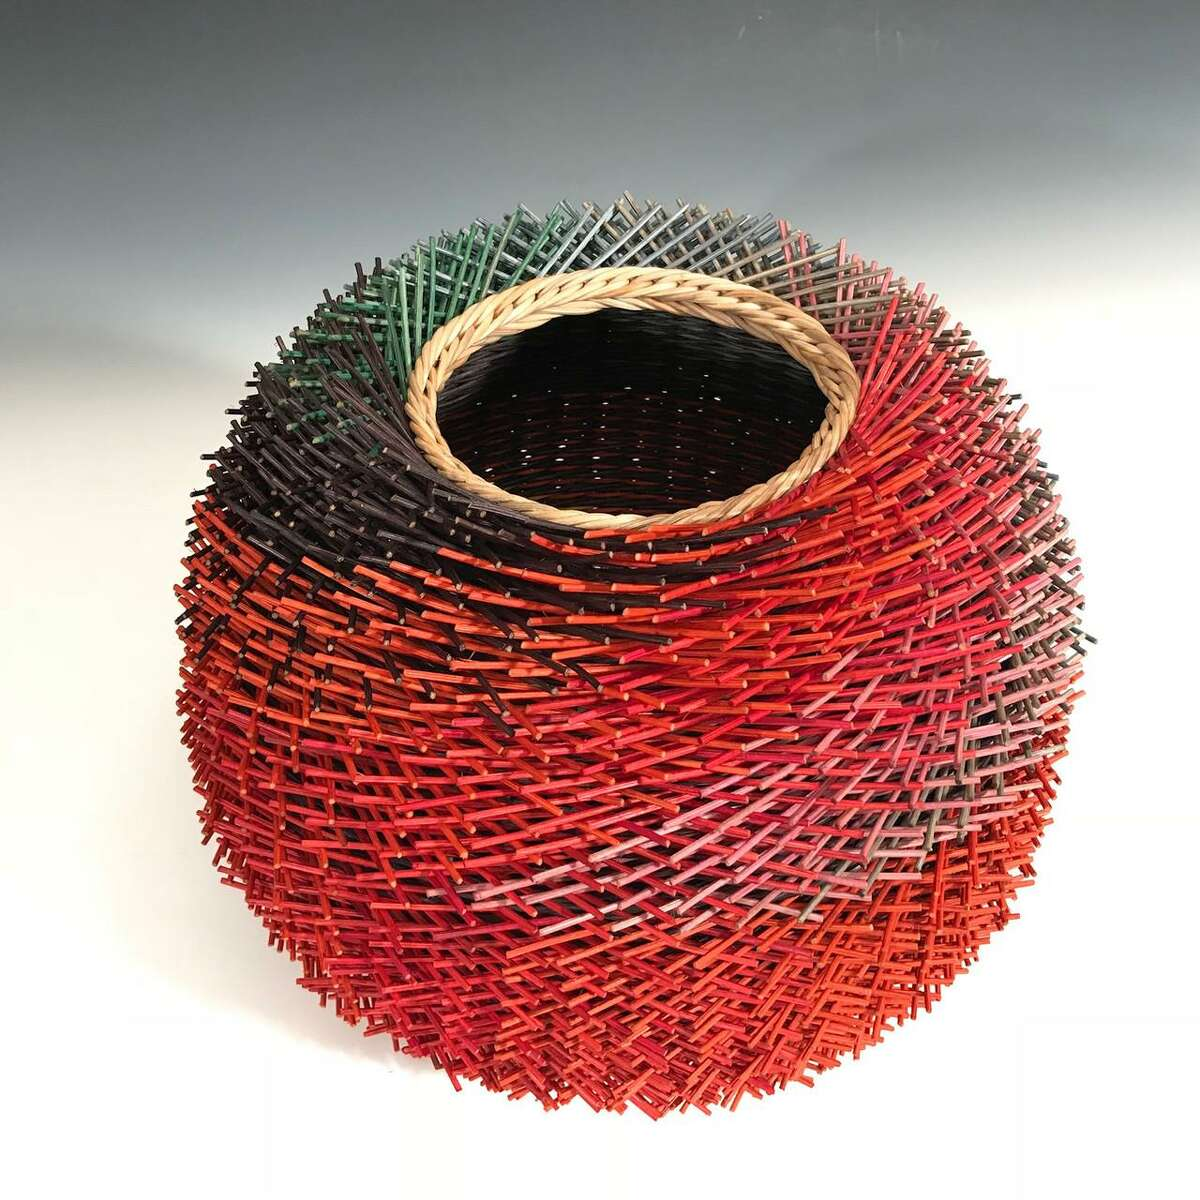 """Ridgefield's Kari Lonning will have her piece """"Round and Hairy"""" displayed in the """"Fiber 2020"""" show."""